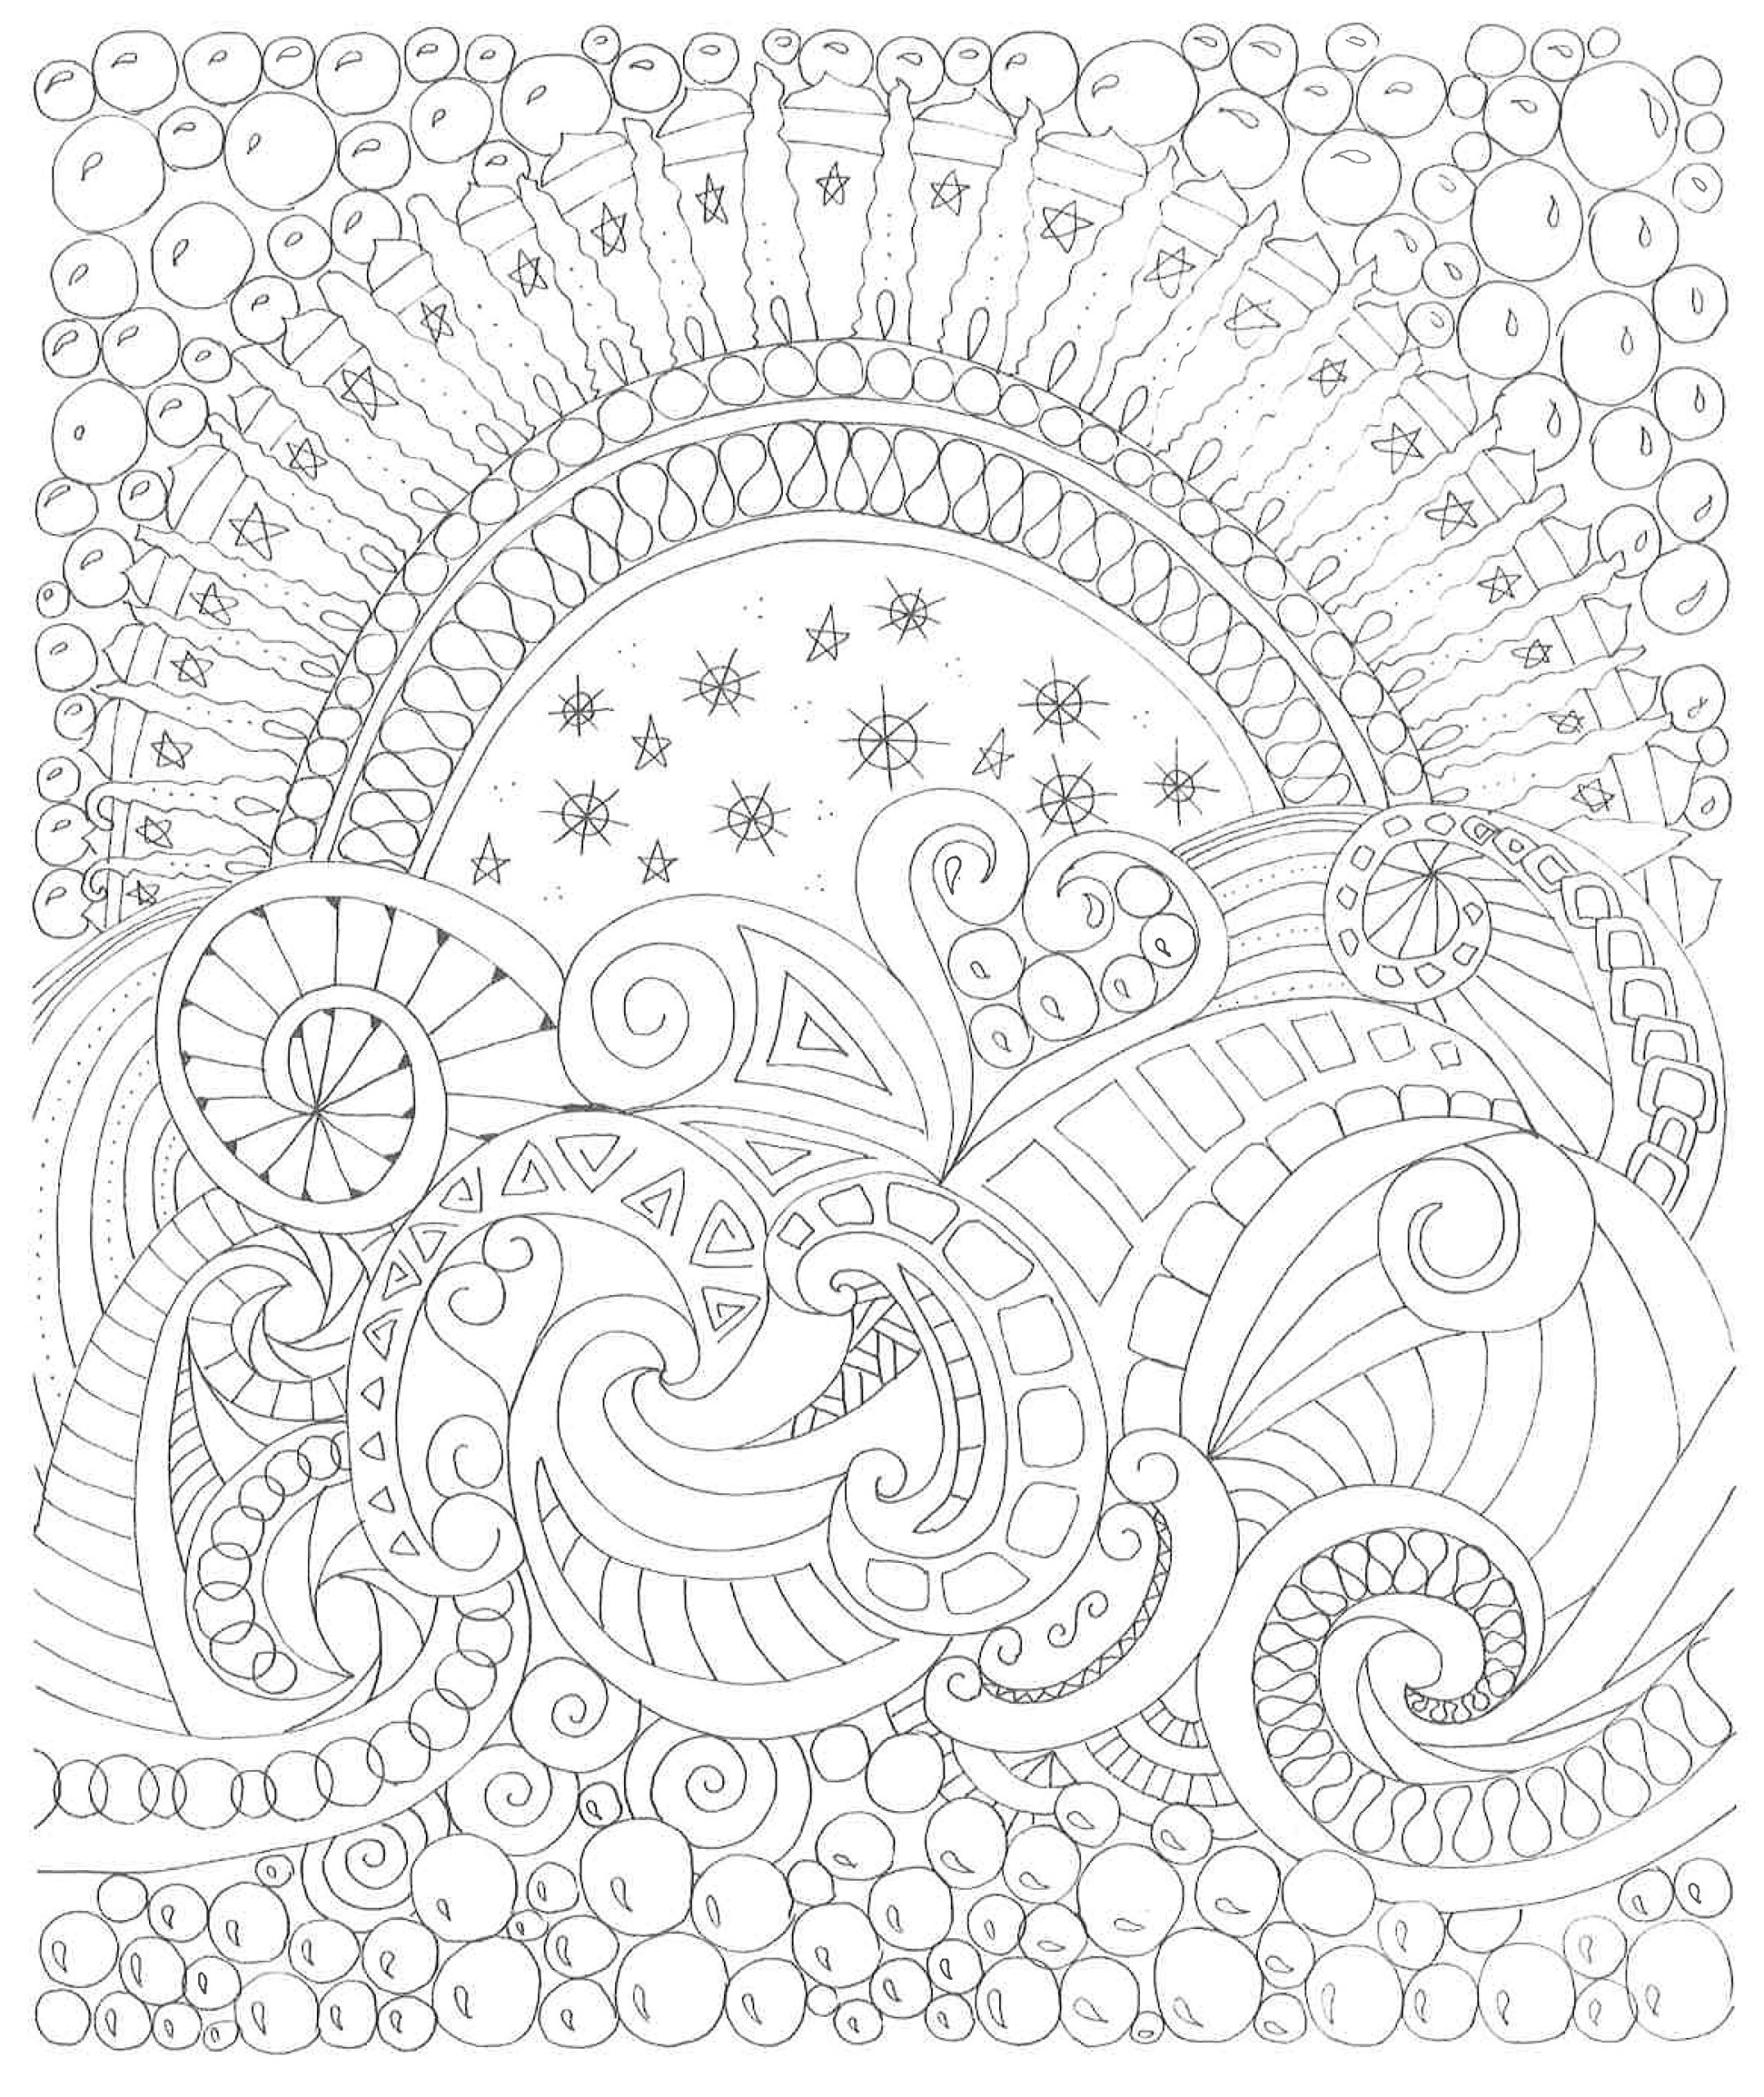 Zendoodle coloring calming swirls stress relieving designs to Zendoodle Coloring Pages Peacock Zendoodle Giraffe Drawing Coloring Pages